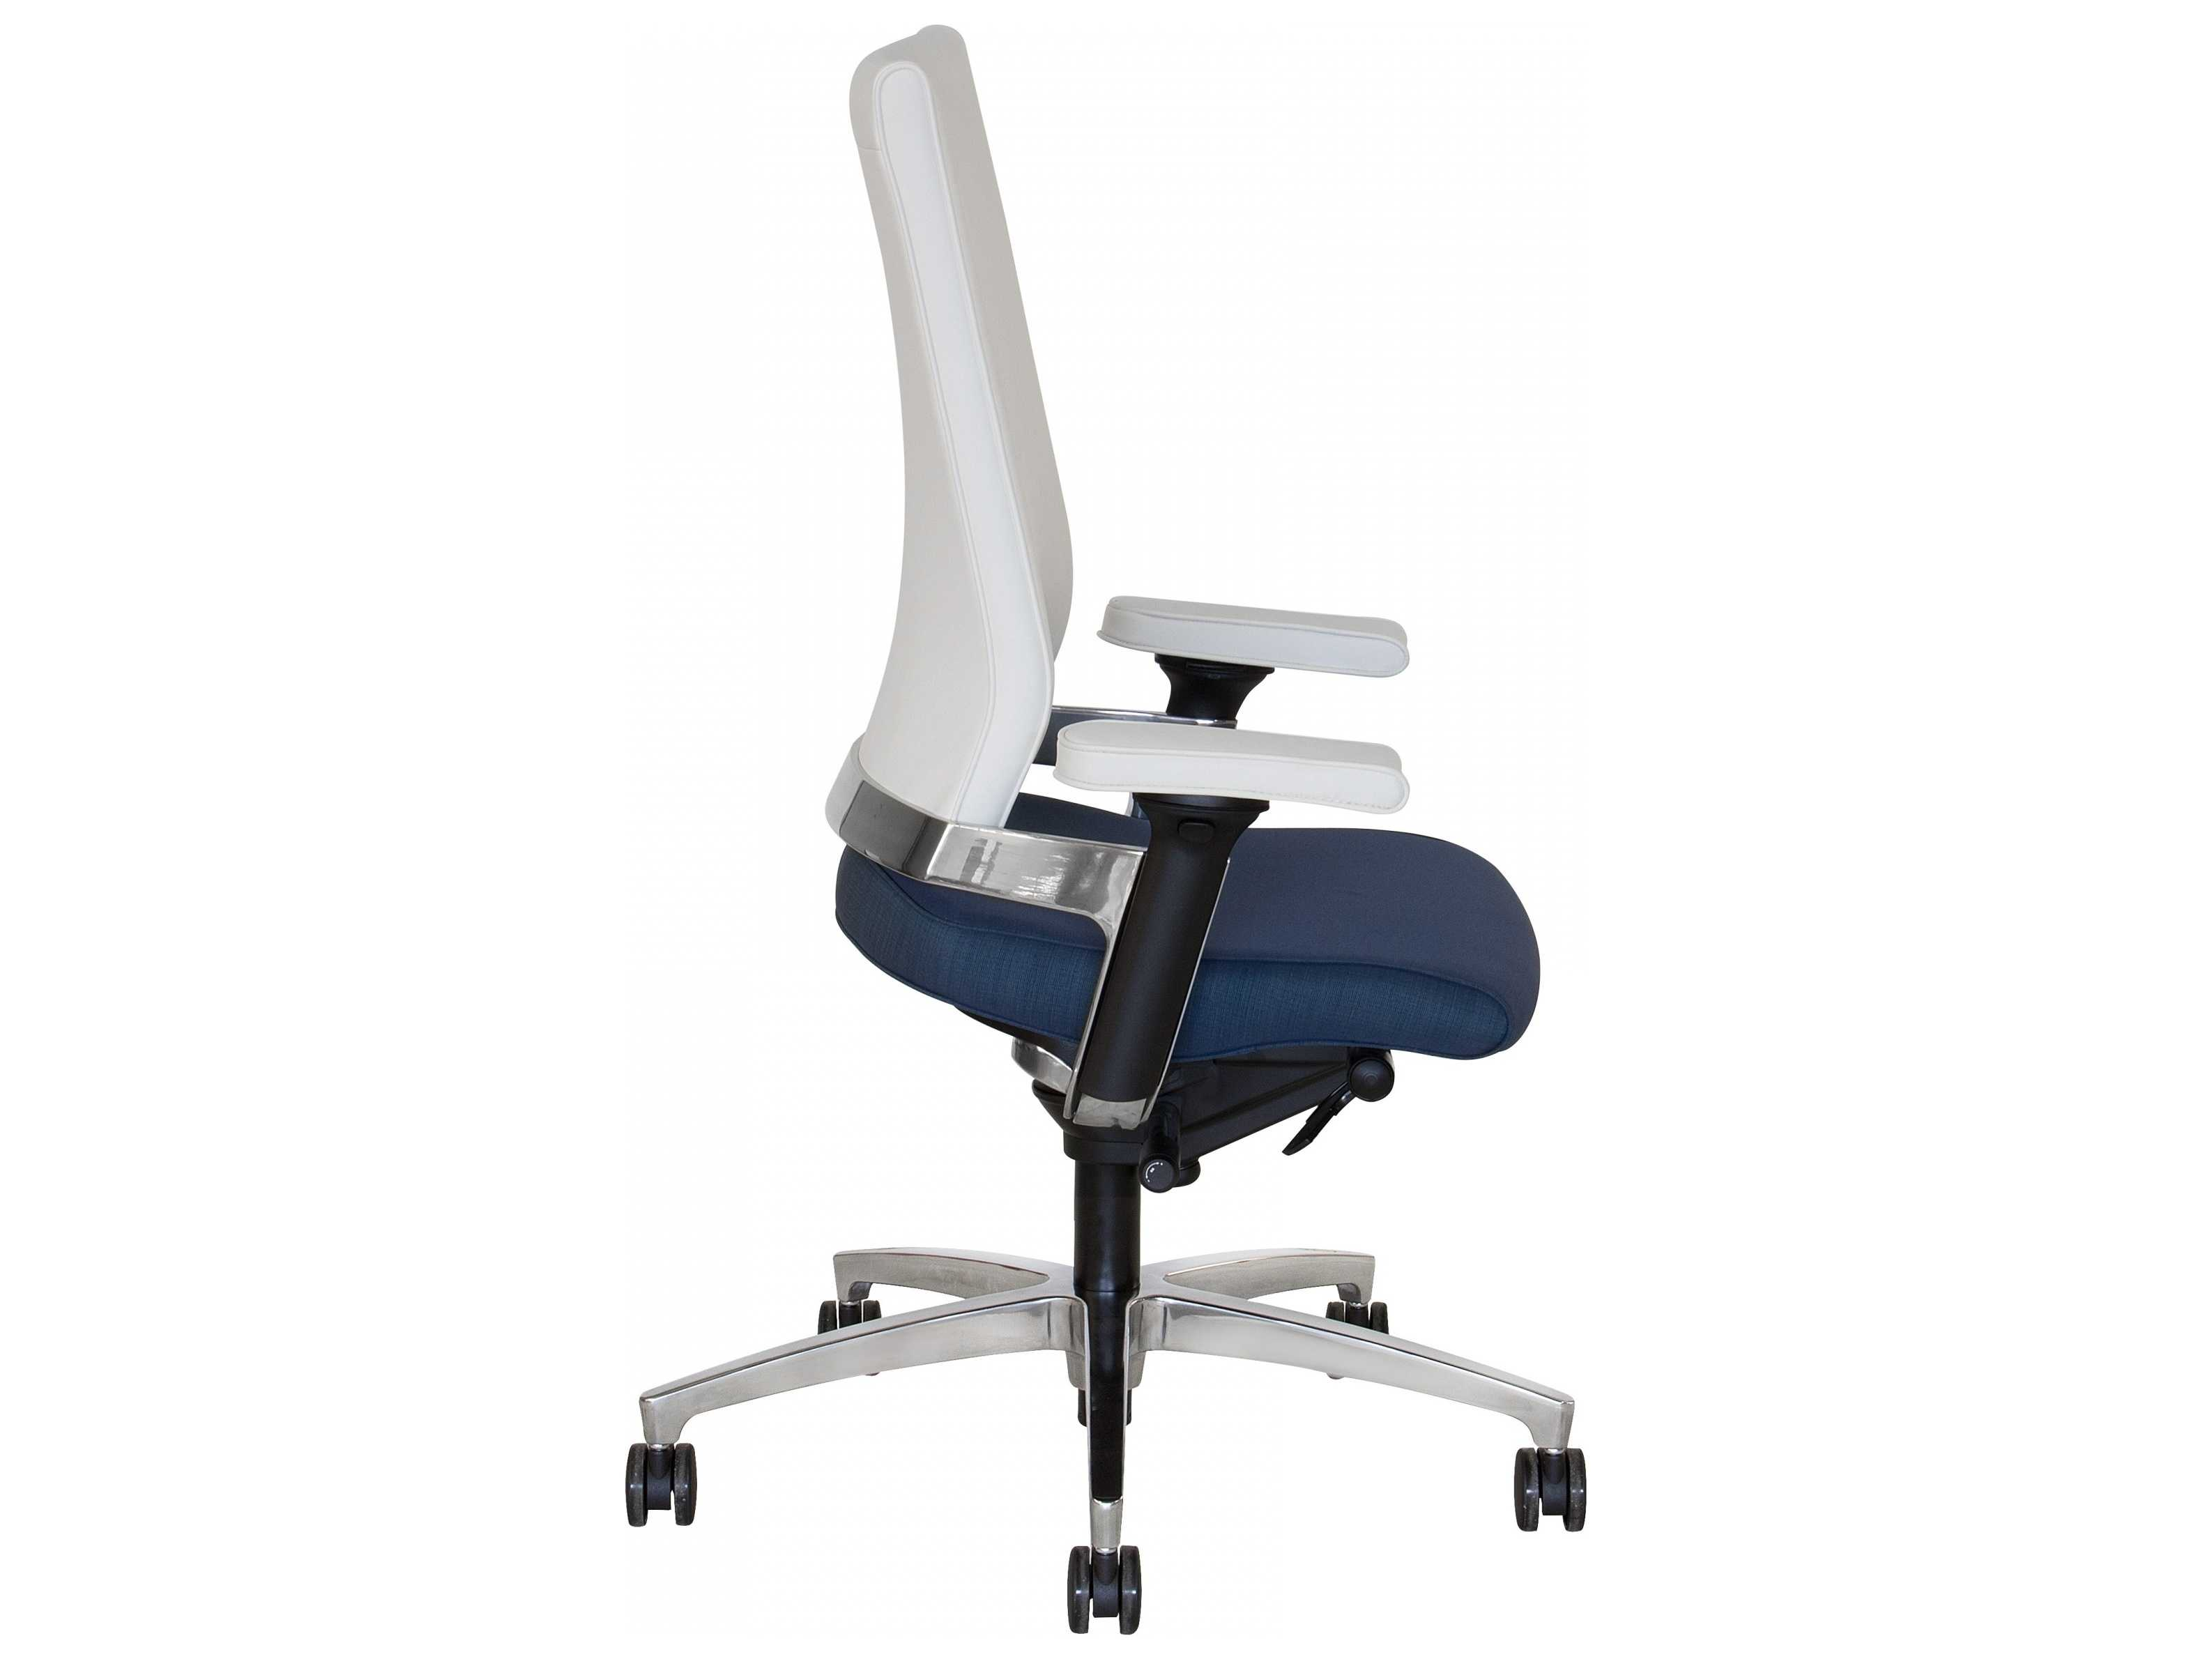 ergonomic chair description womens office chairs dauphin lacinta executive mid back daulc1020